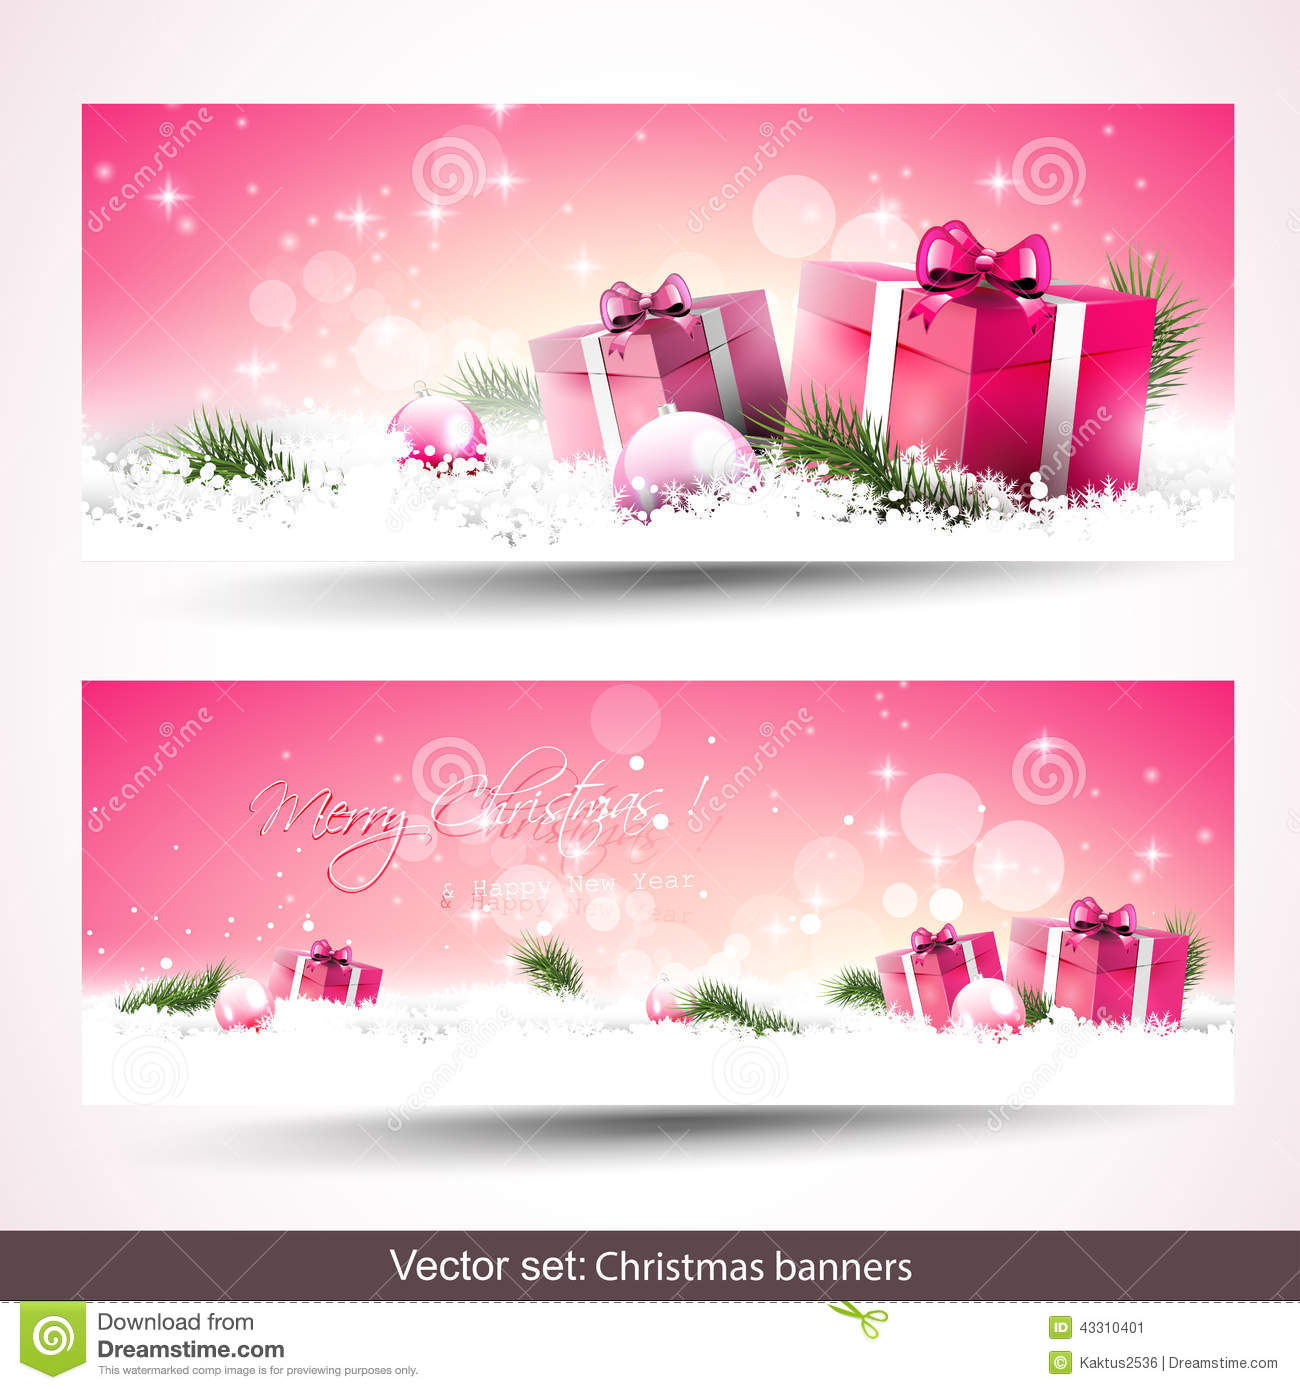 Download Christmas banners stock image. Image of children, celebration - 43310401